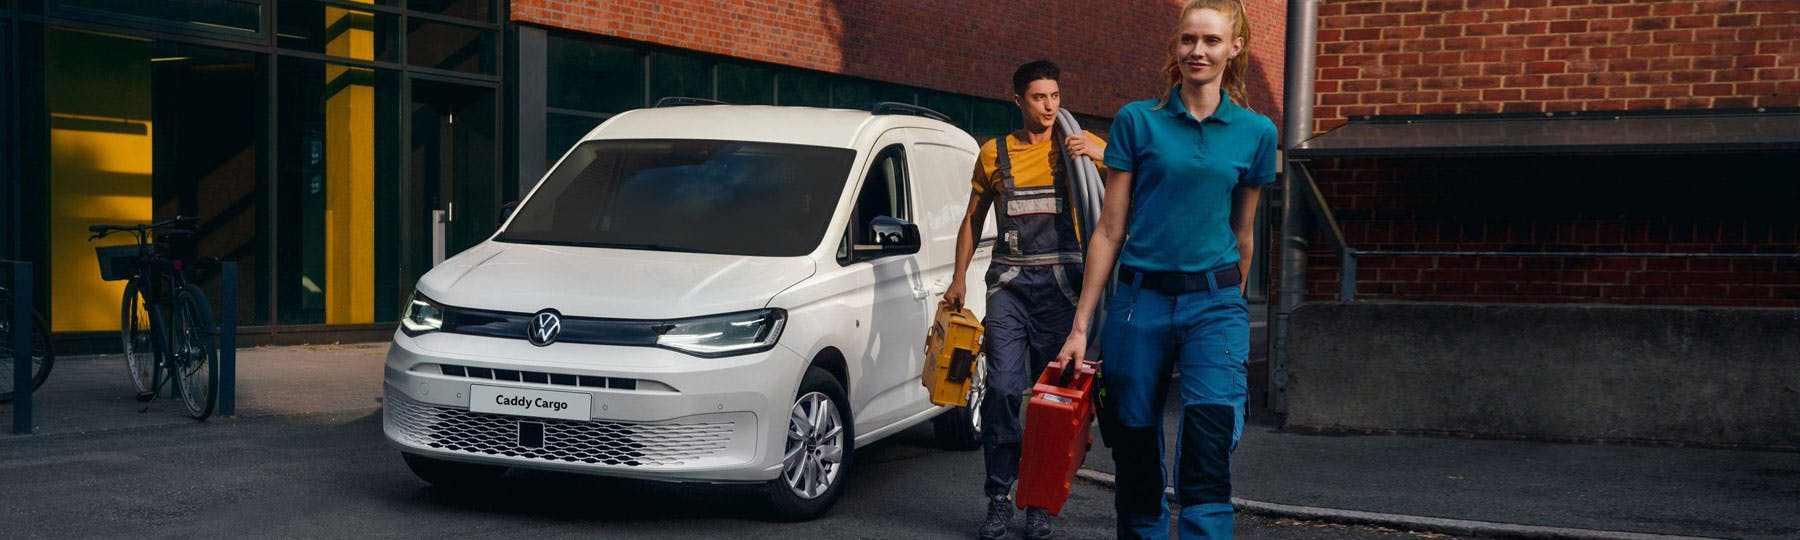 The New Volkswagen Caddy Cargo